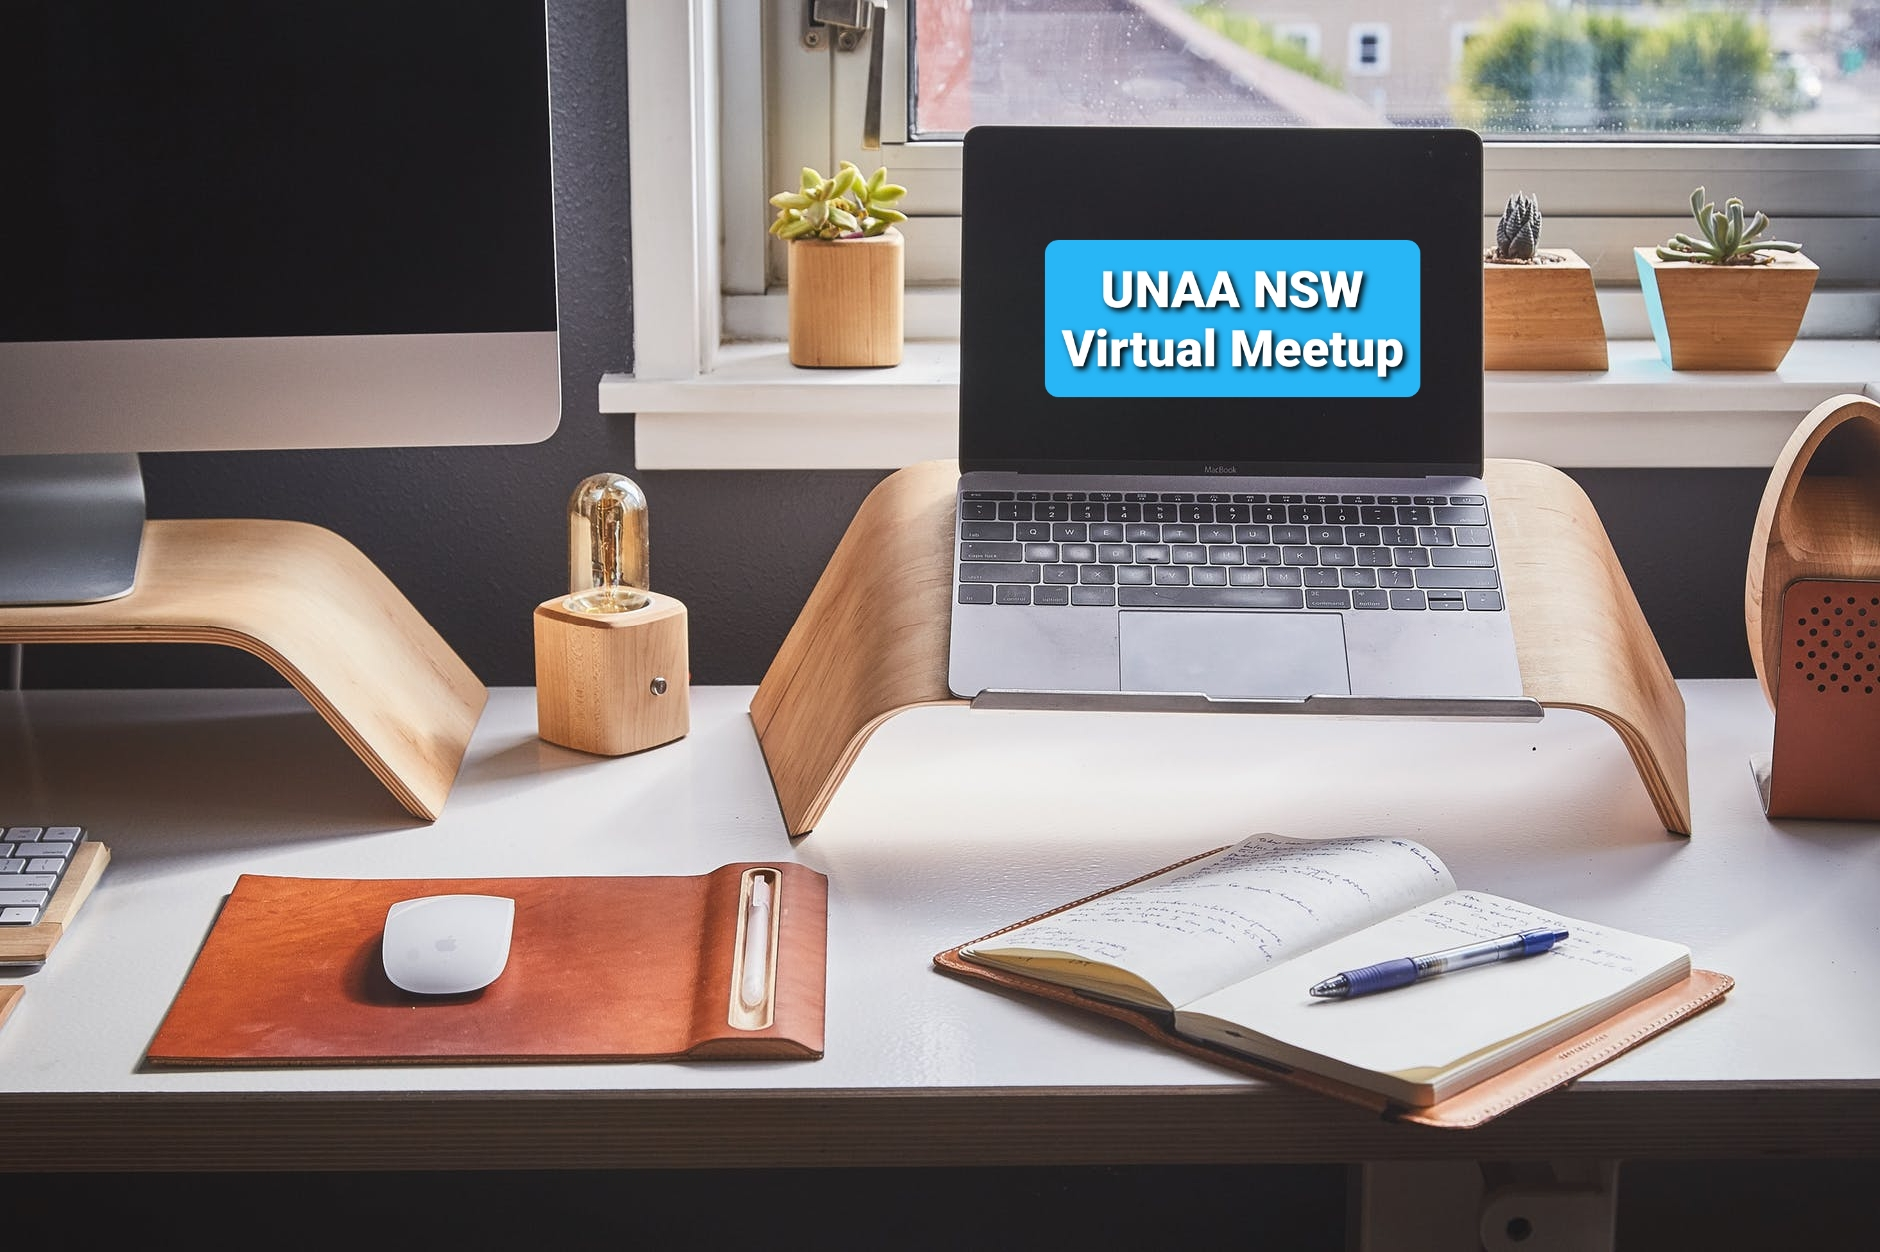 UNAA NSW Virtual Meetup